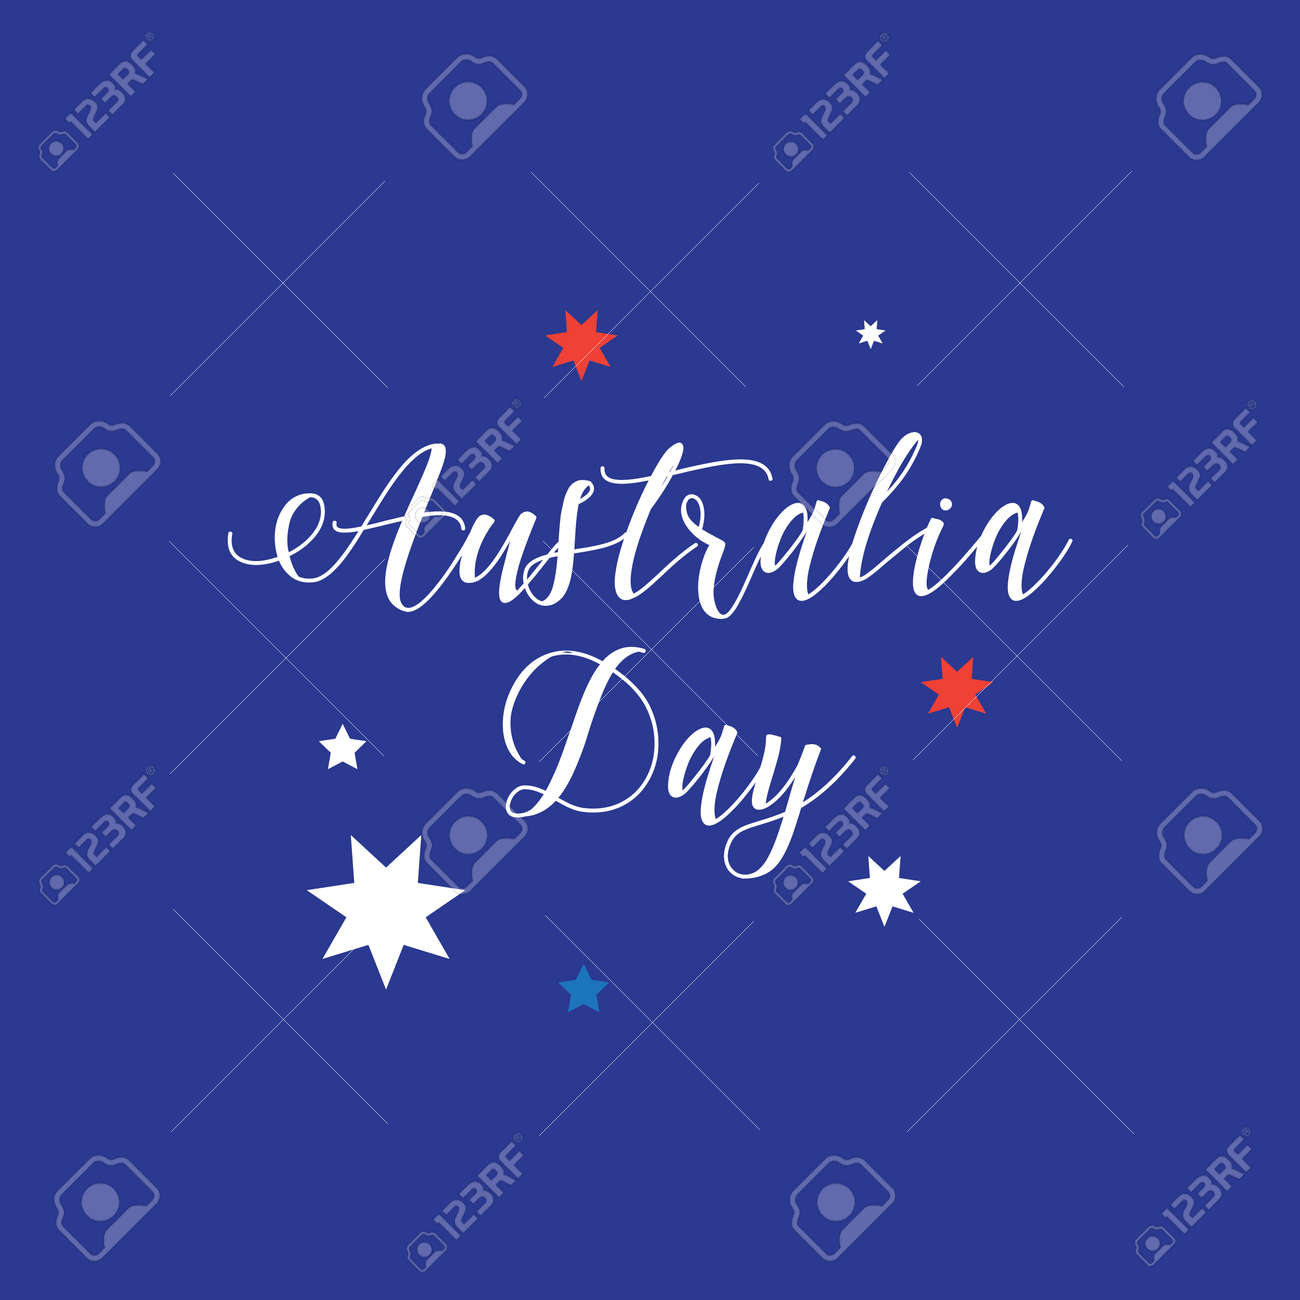 Australia day 26 january lettering poster with calligraphy on australia day 26 january lettering poster with calligraphy on australian flag color background heart m4hsunfo